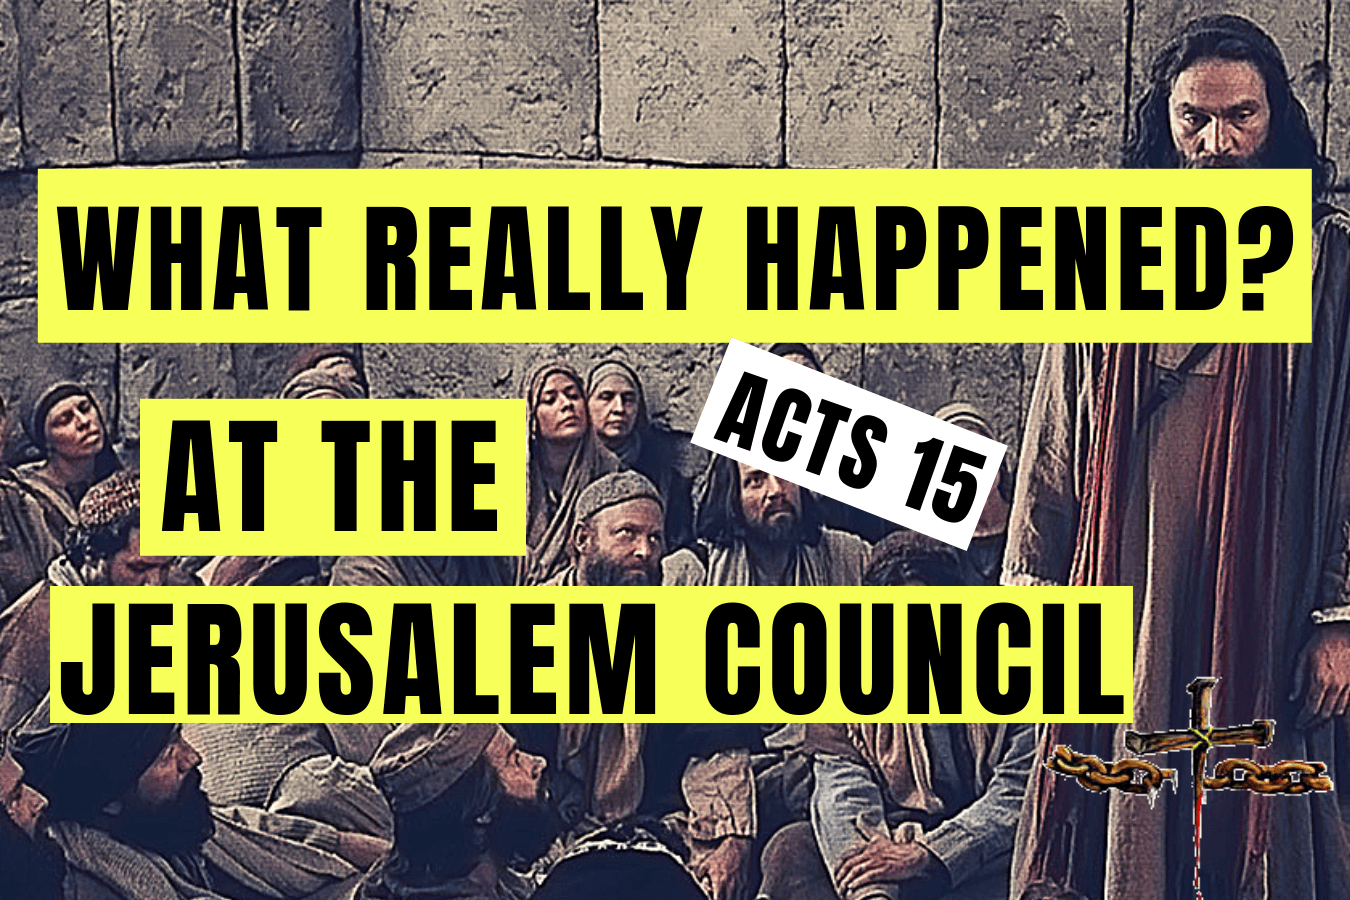 What is the Jerusalem Council and what happen?